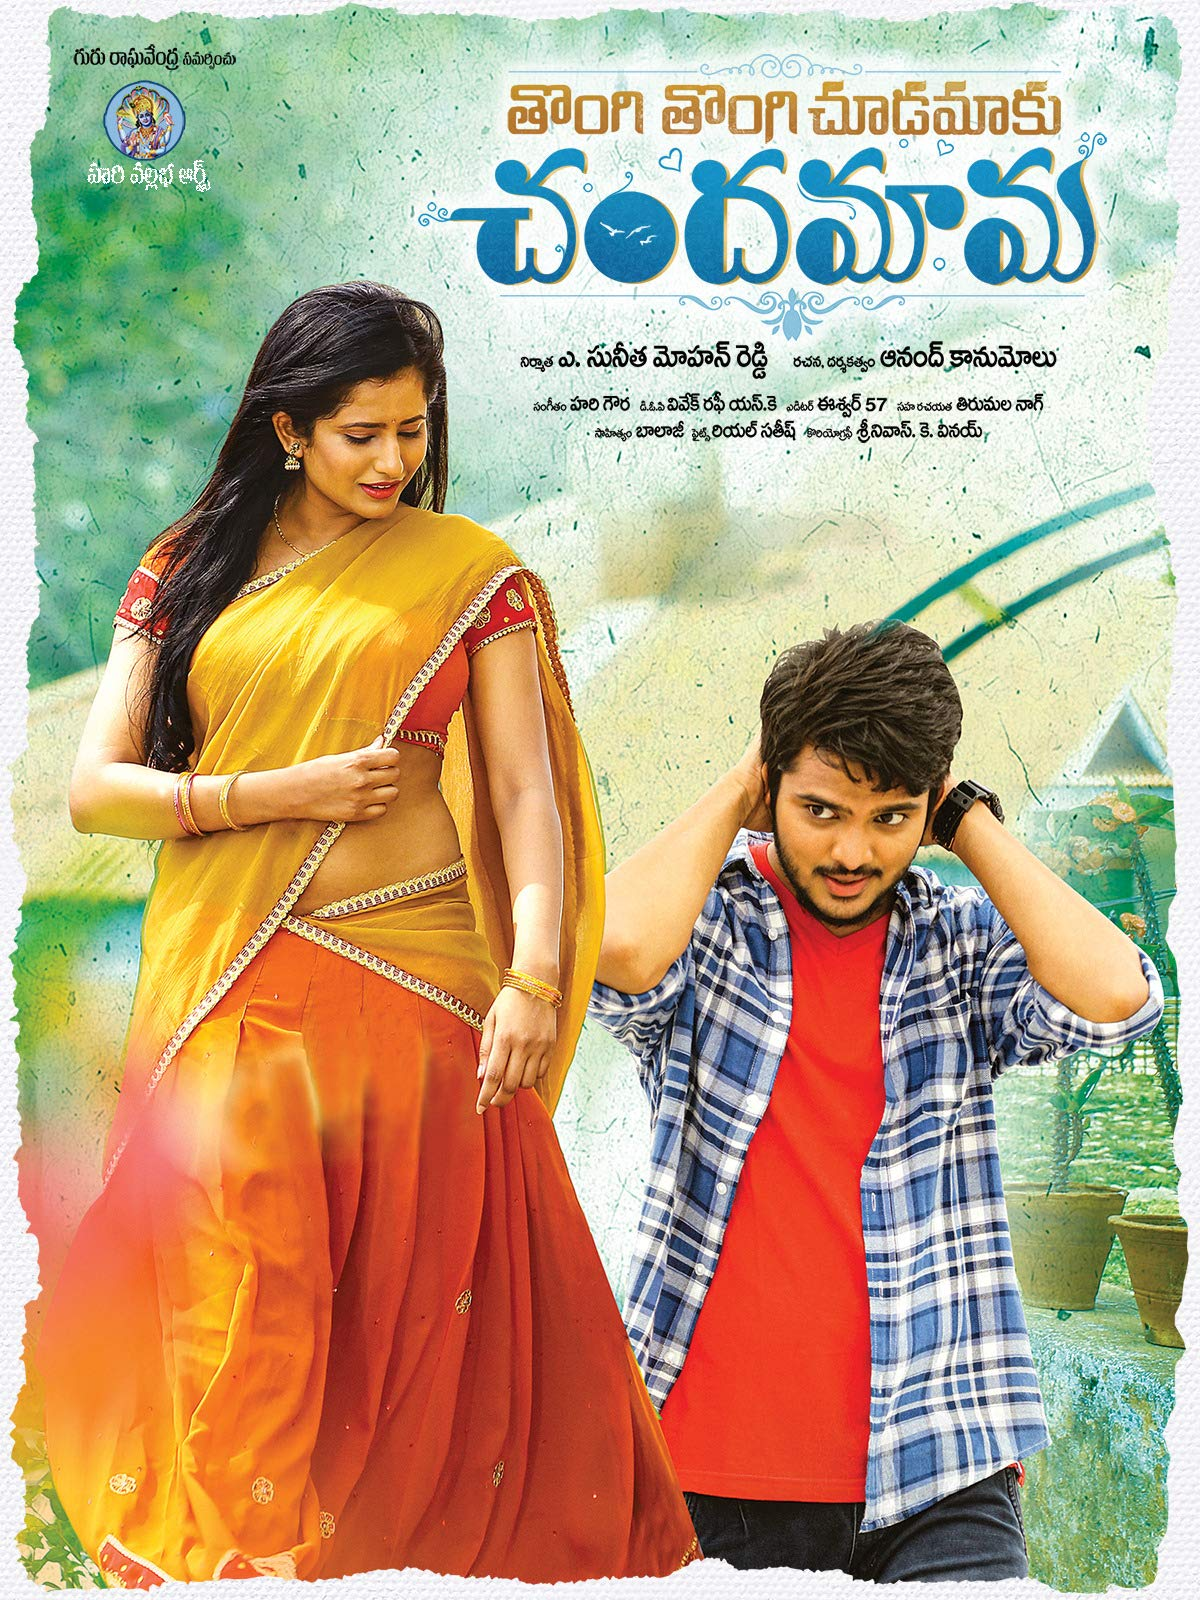 Tongi Tongi Chudamaku Chandamama 2021 Telugu Movie 480p | 720p HDRip  435MB | 1.3GB Download